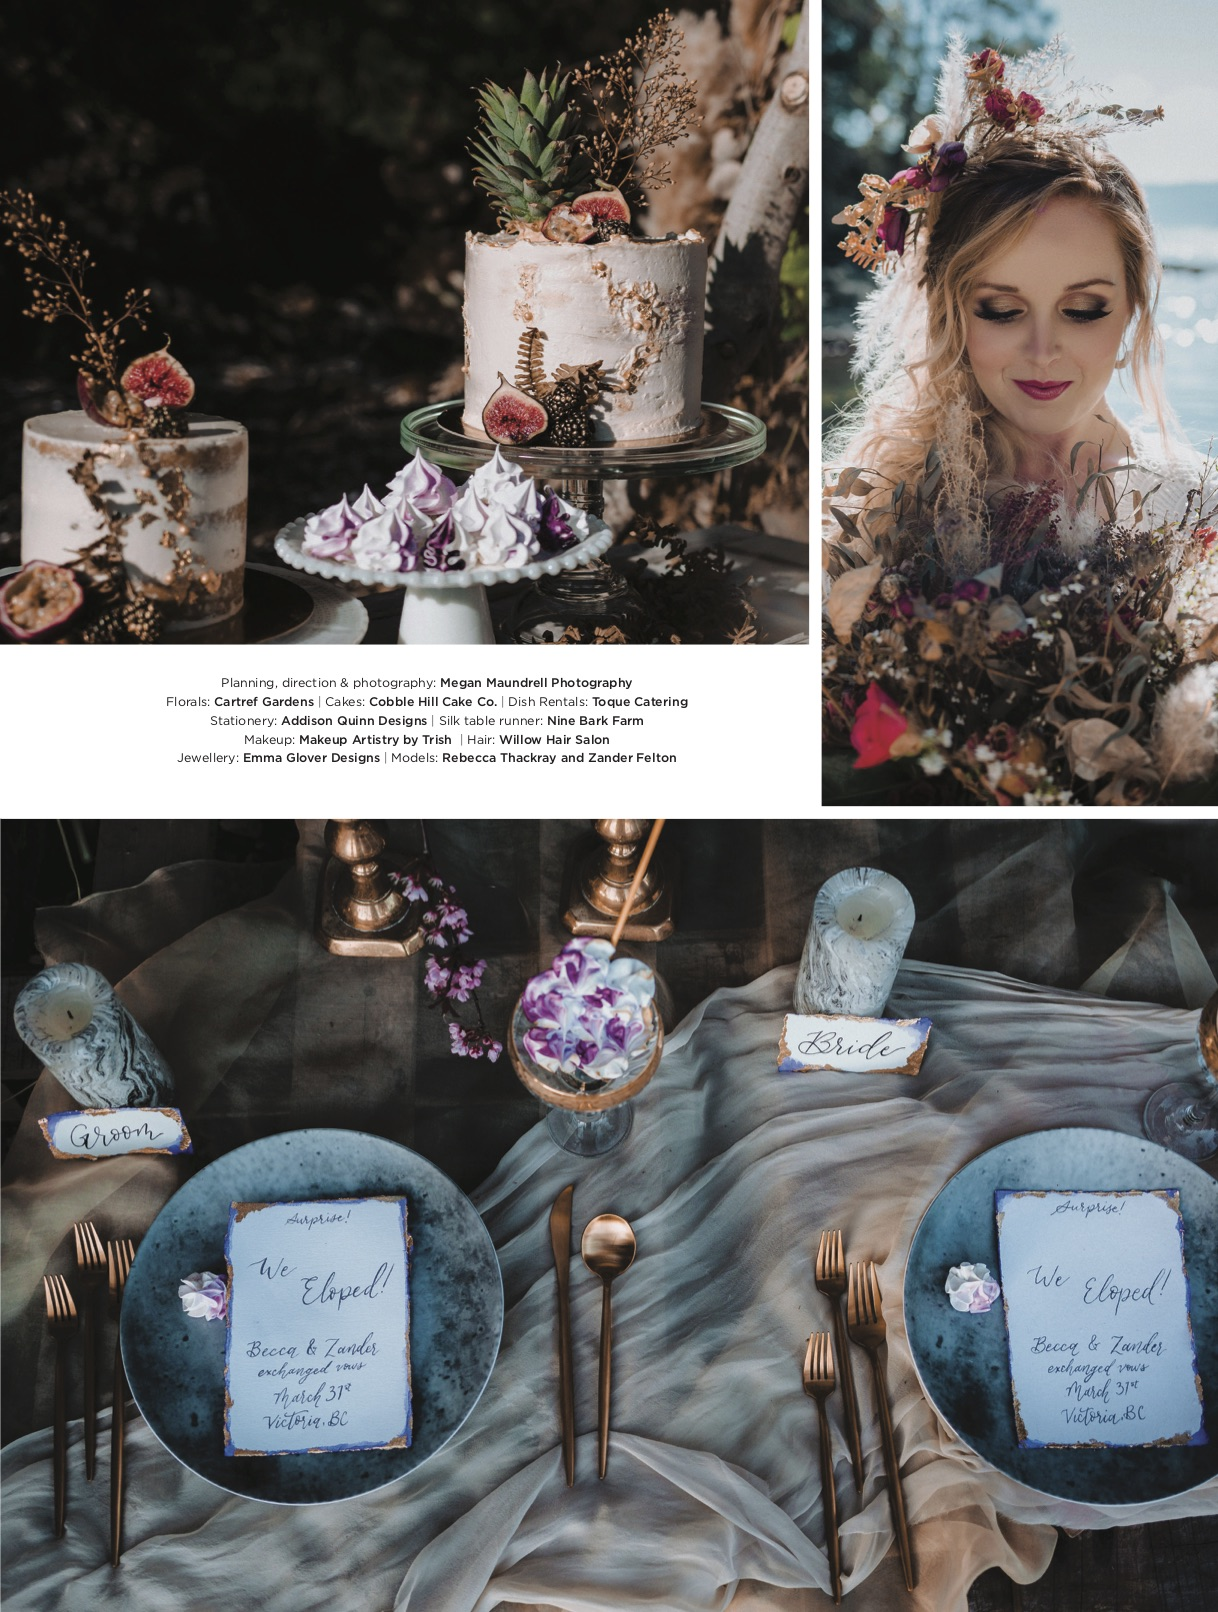 Published in Today's Bride Magazine